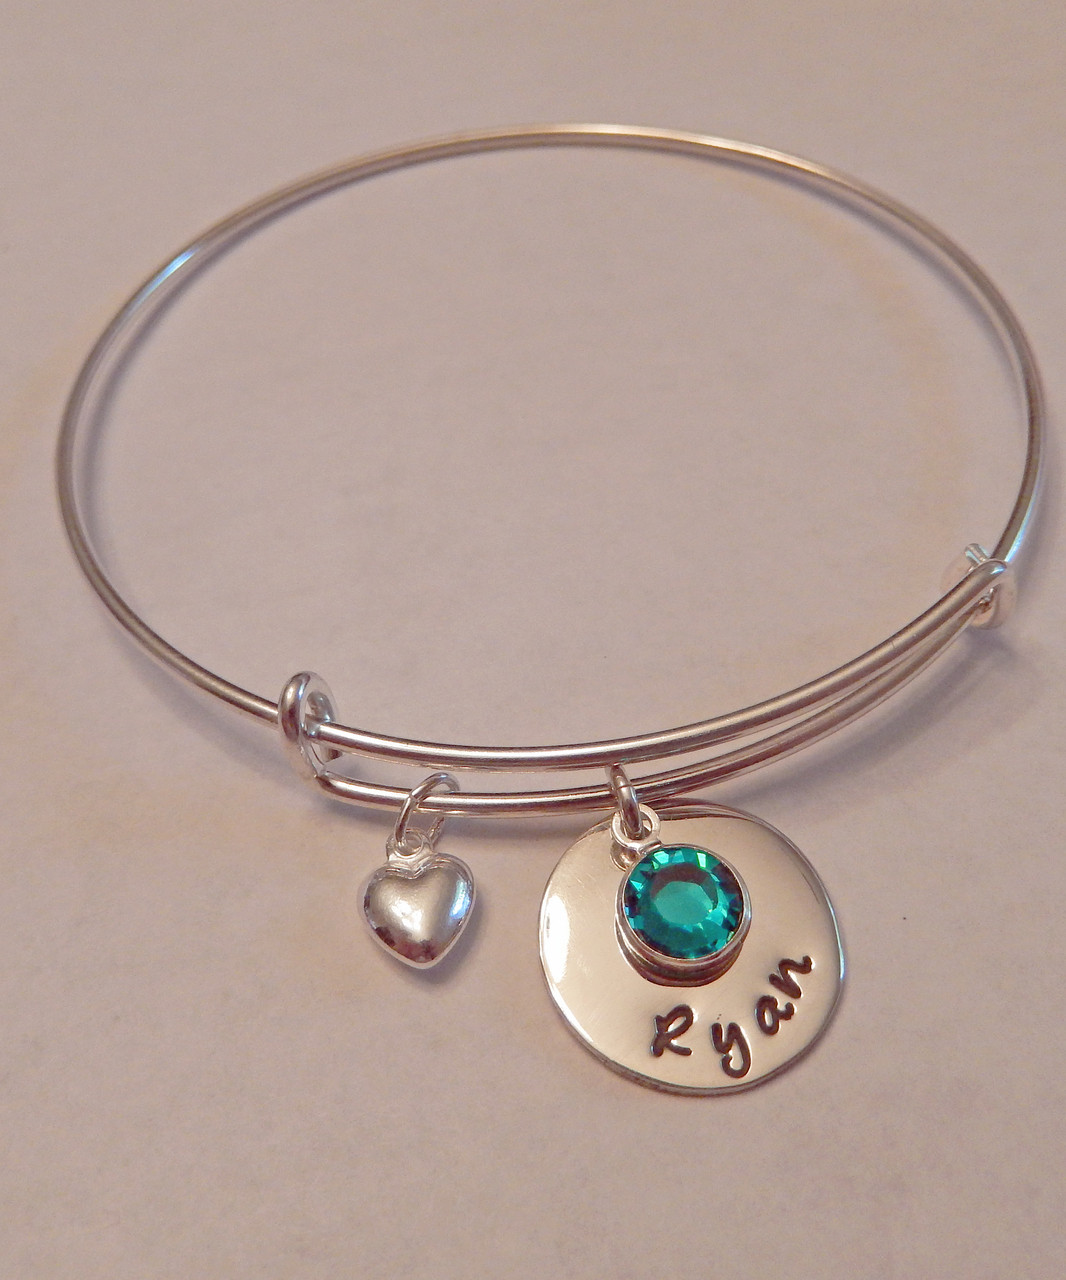 b21d3657b69 Hand Stamped Round Name Charm with Genuine Swarovski Birthstone on  Expandable Bangle Bracelet all Sterling Silver